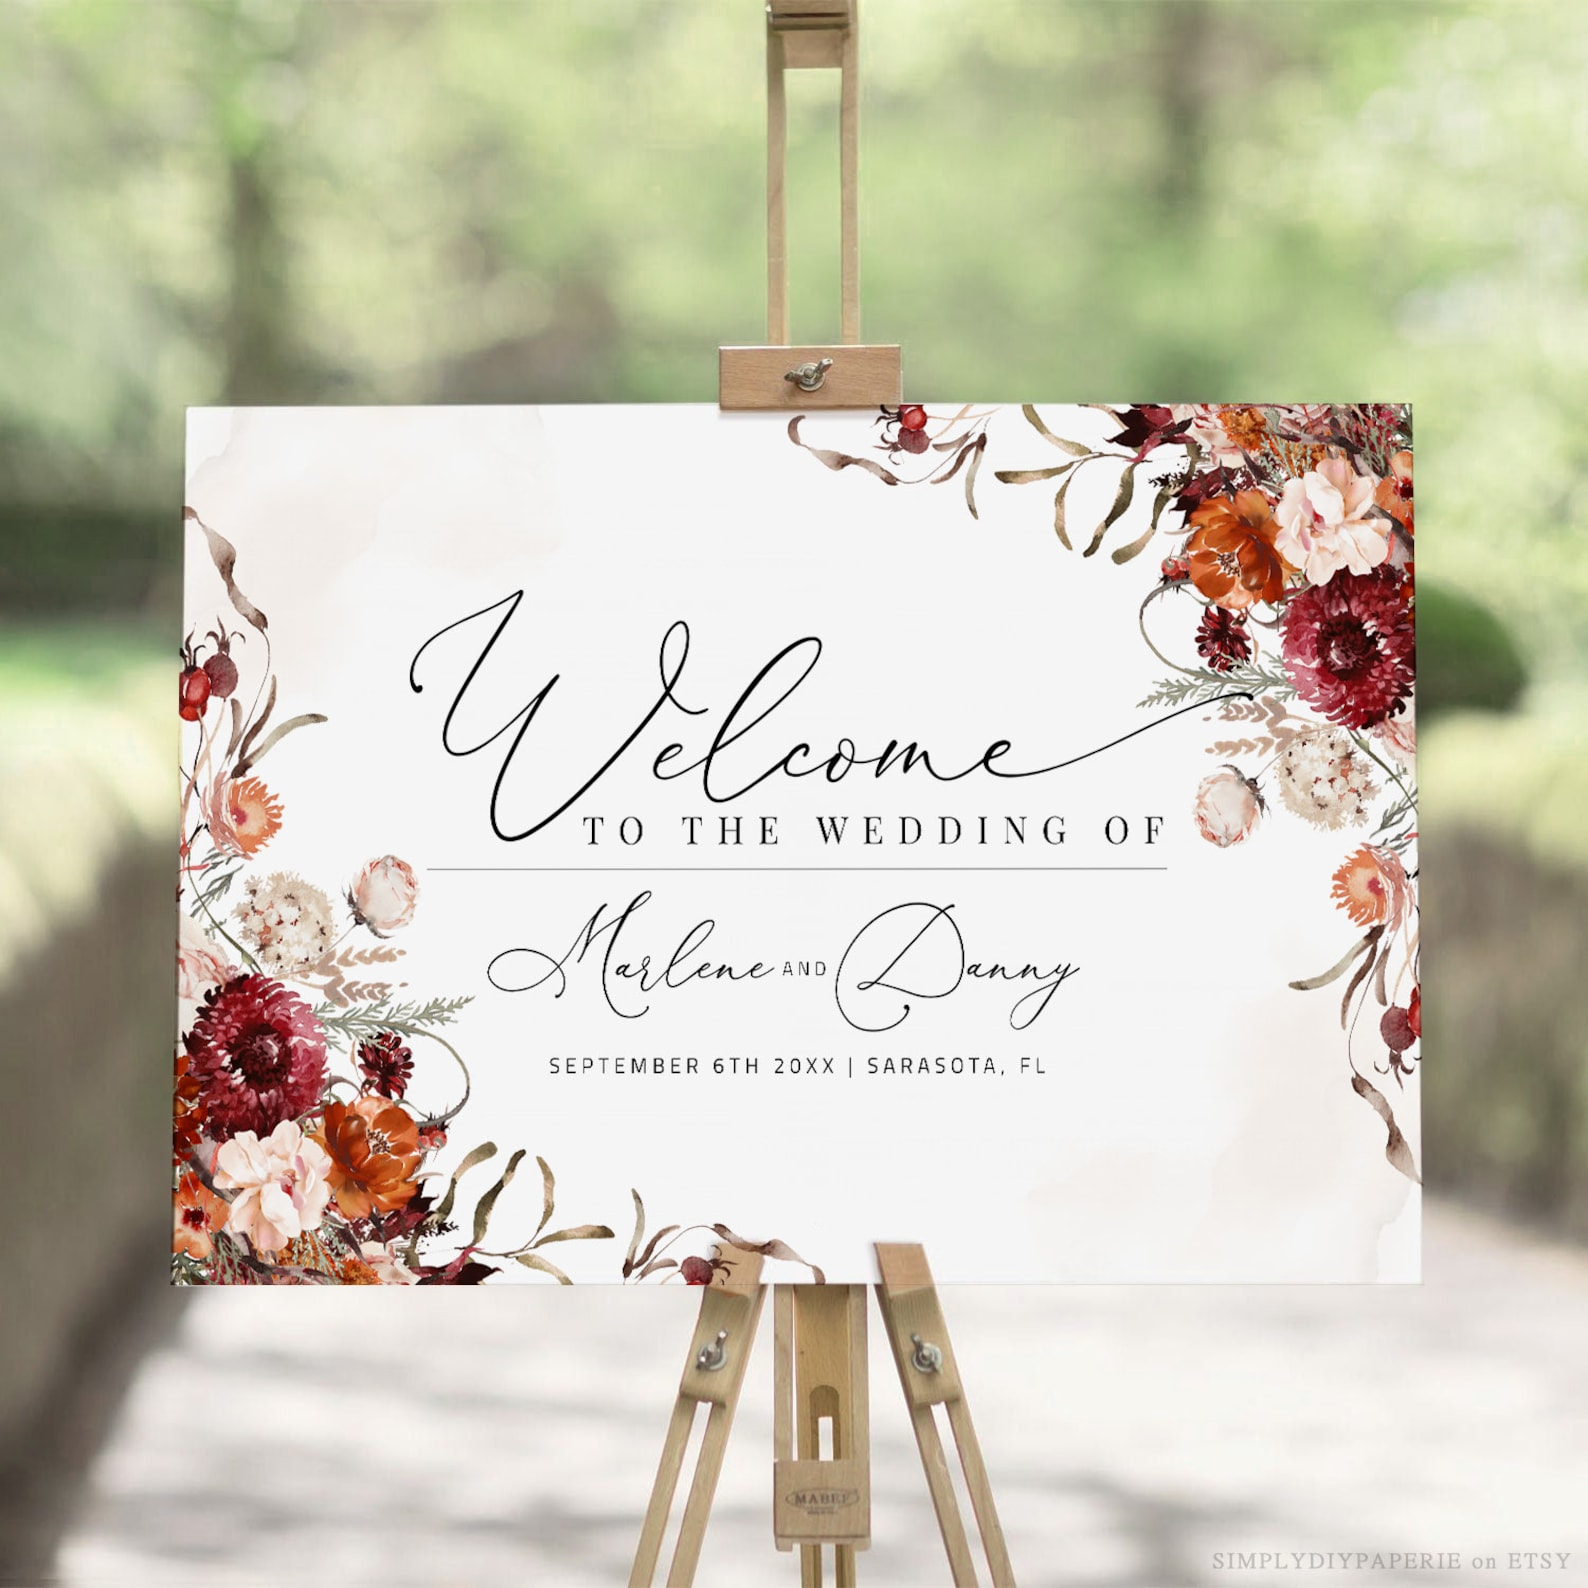 Autumn/Fall wedding welcome sign